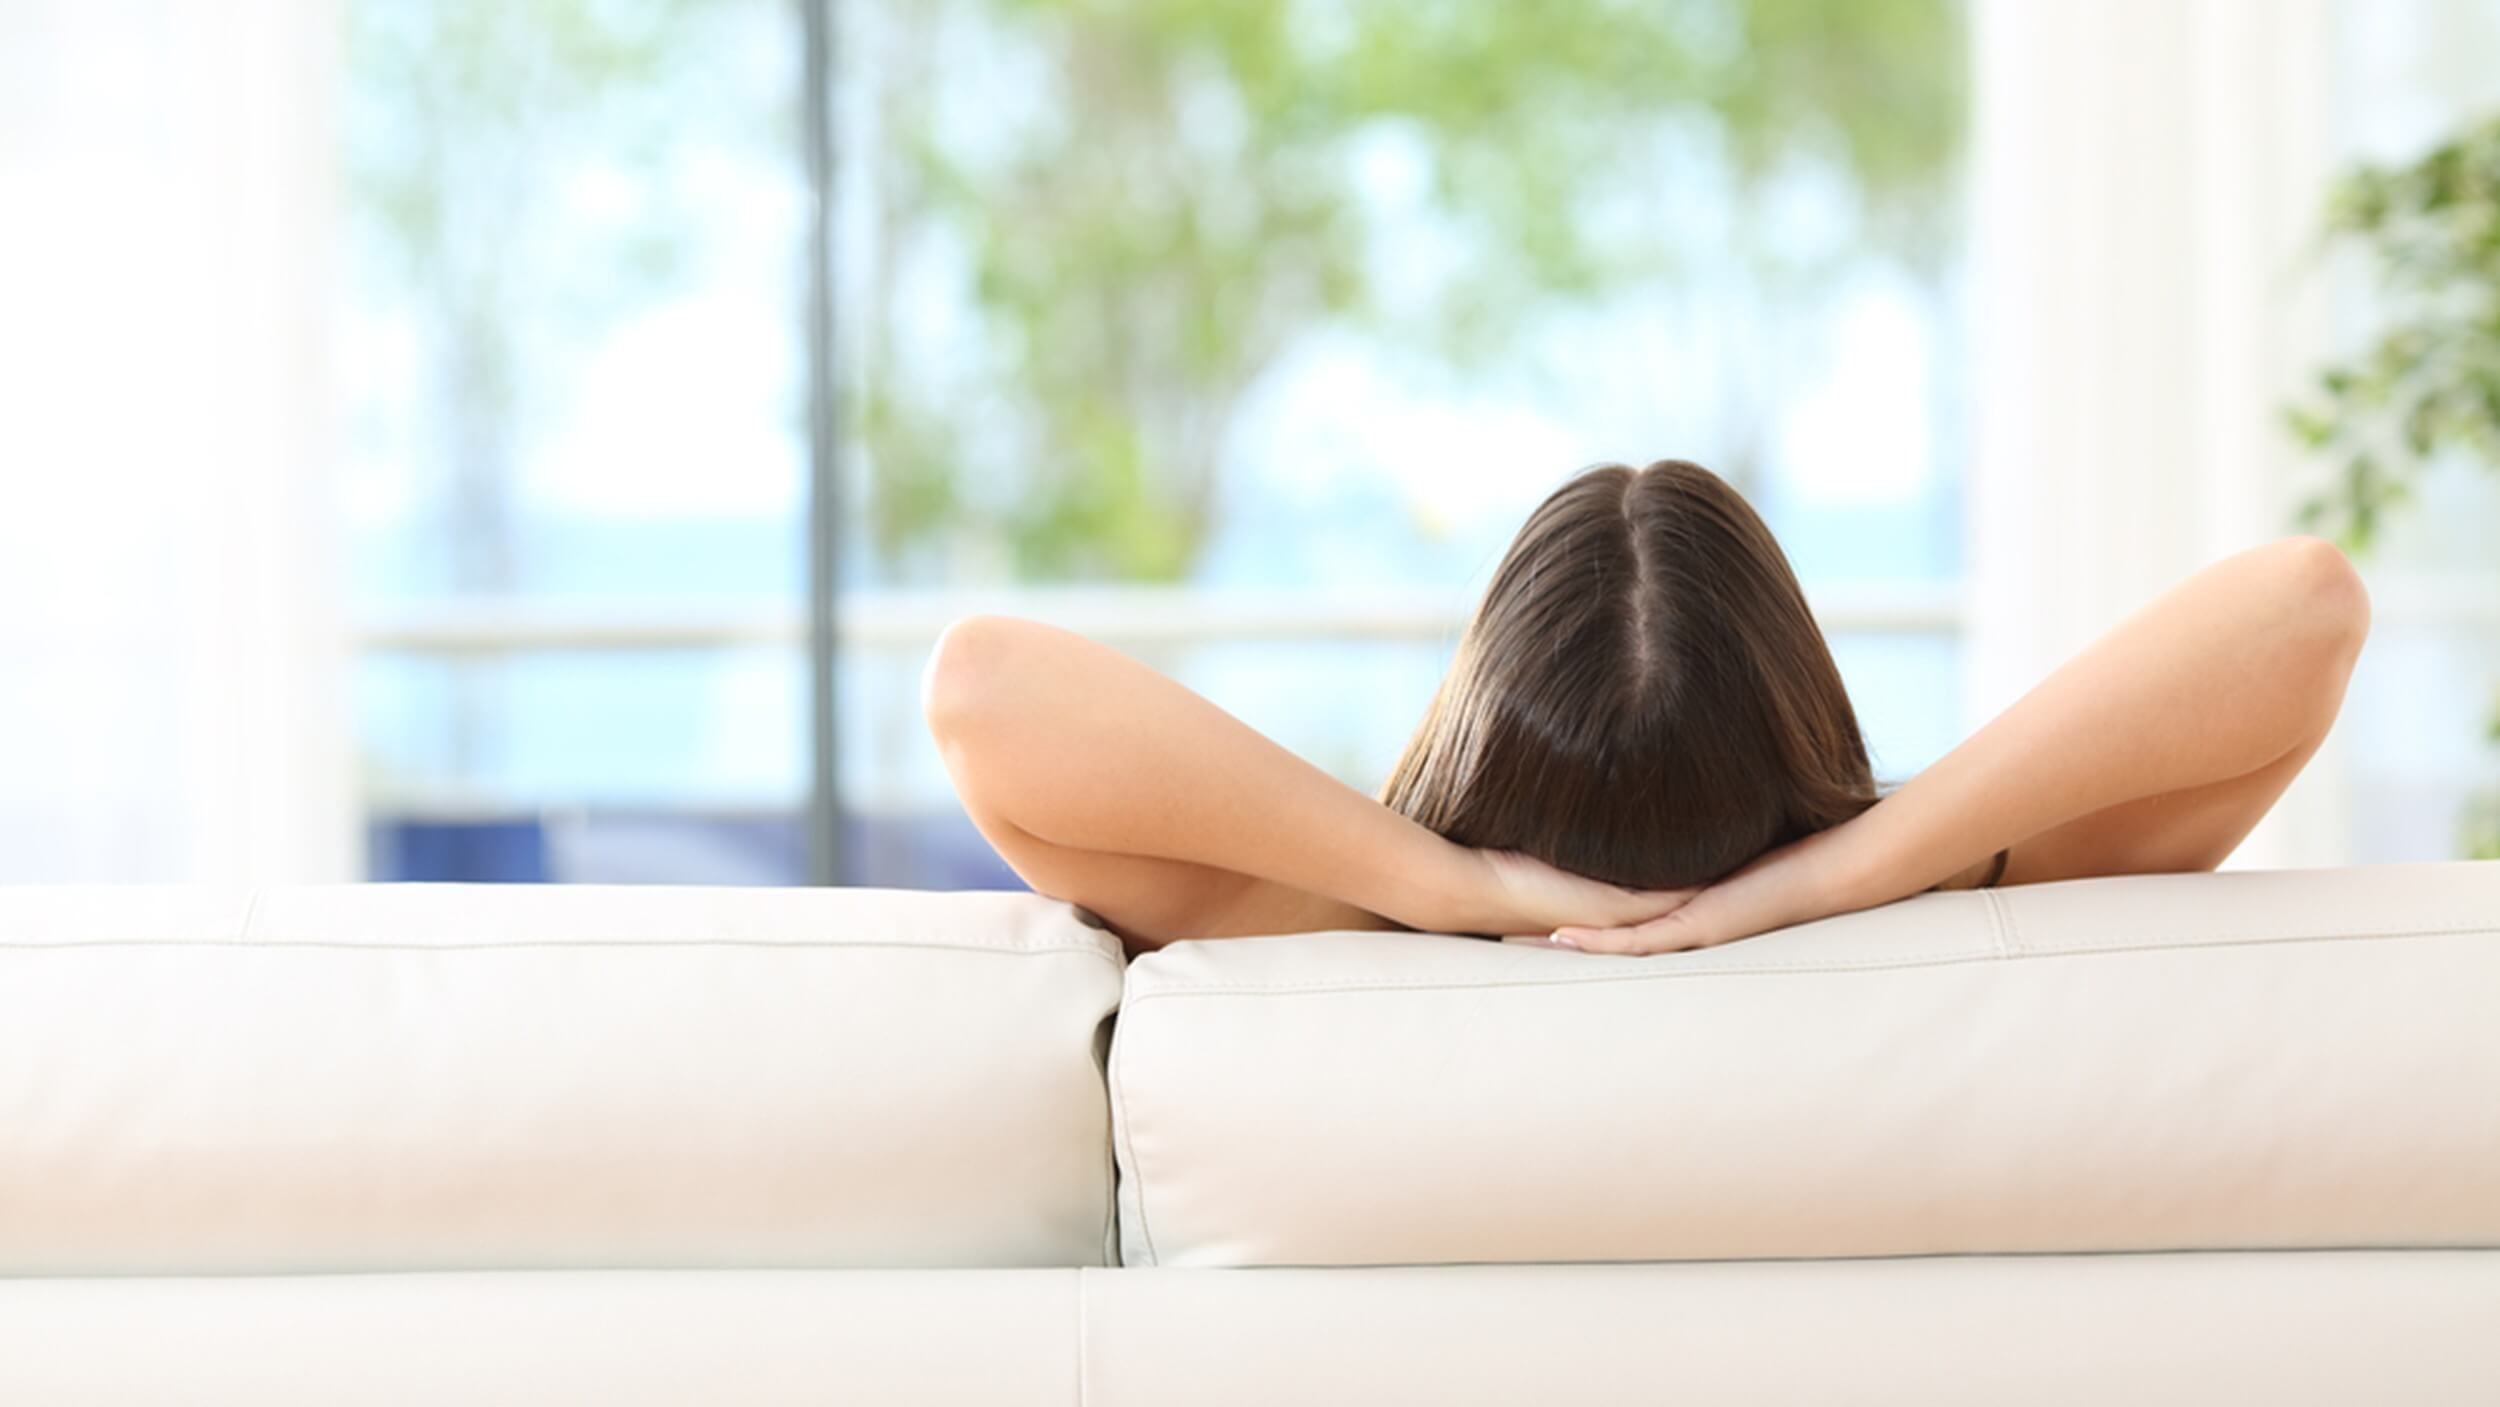 Rear view of a woman relaxing sitting on a couch with the hands on the head and looking outdoors through the window of the livingroom at home; Shutterstock ID 417115363; PO: today.com